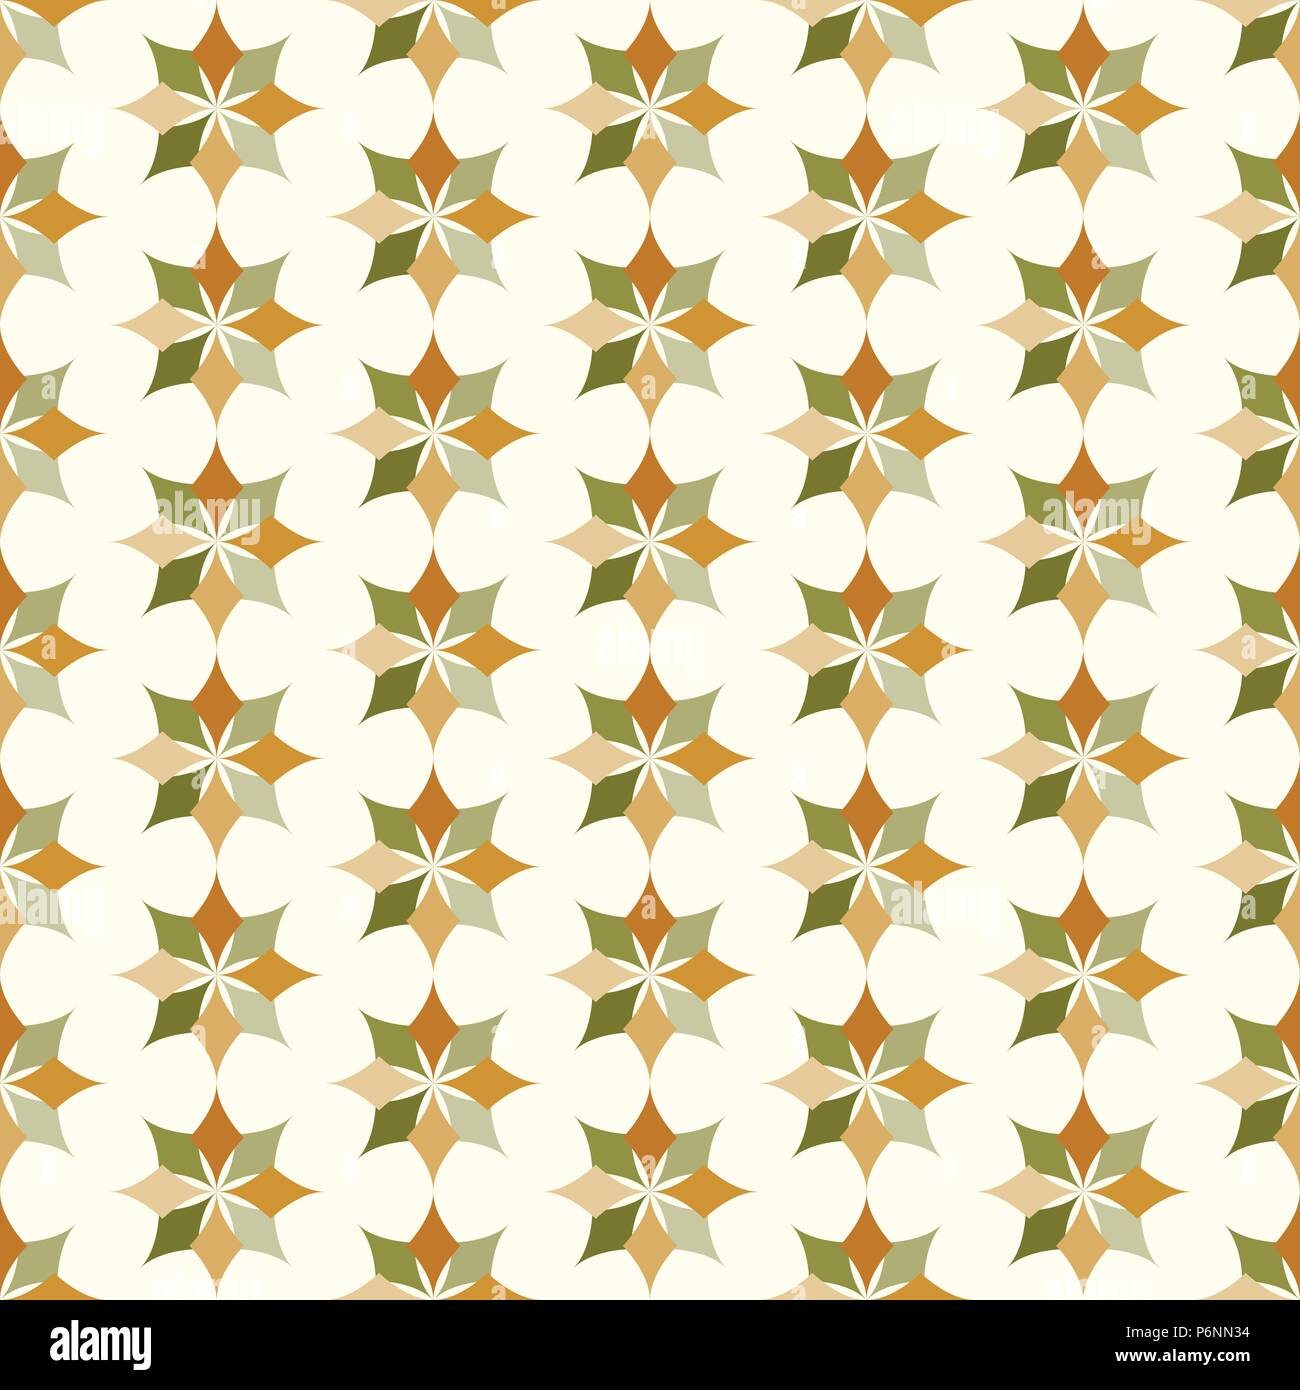 Dark brown and green modern classic bloom seamless pattern. Abstract blossom style for graphic and retro design. - Stock Vector